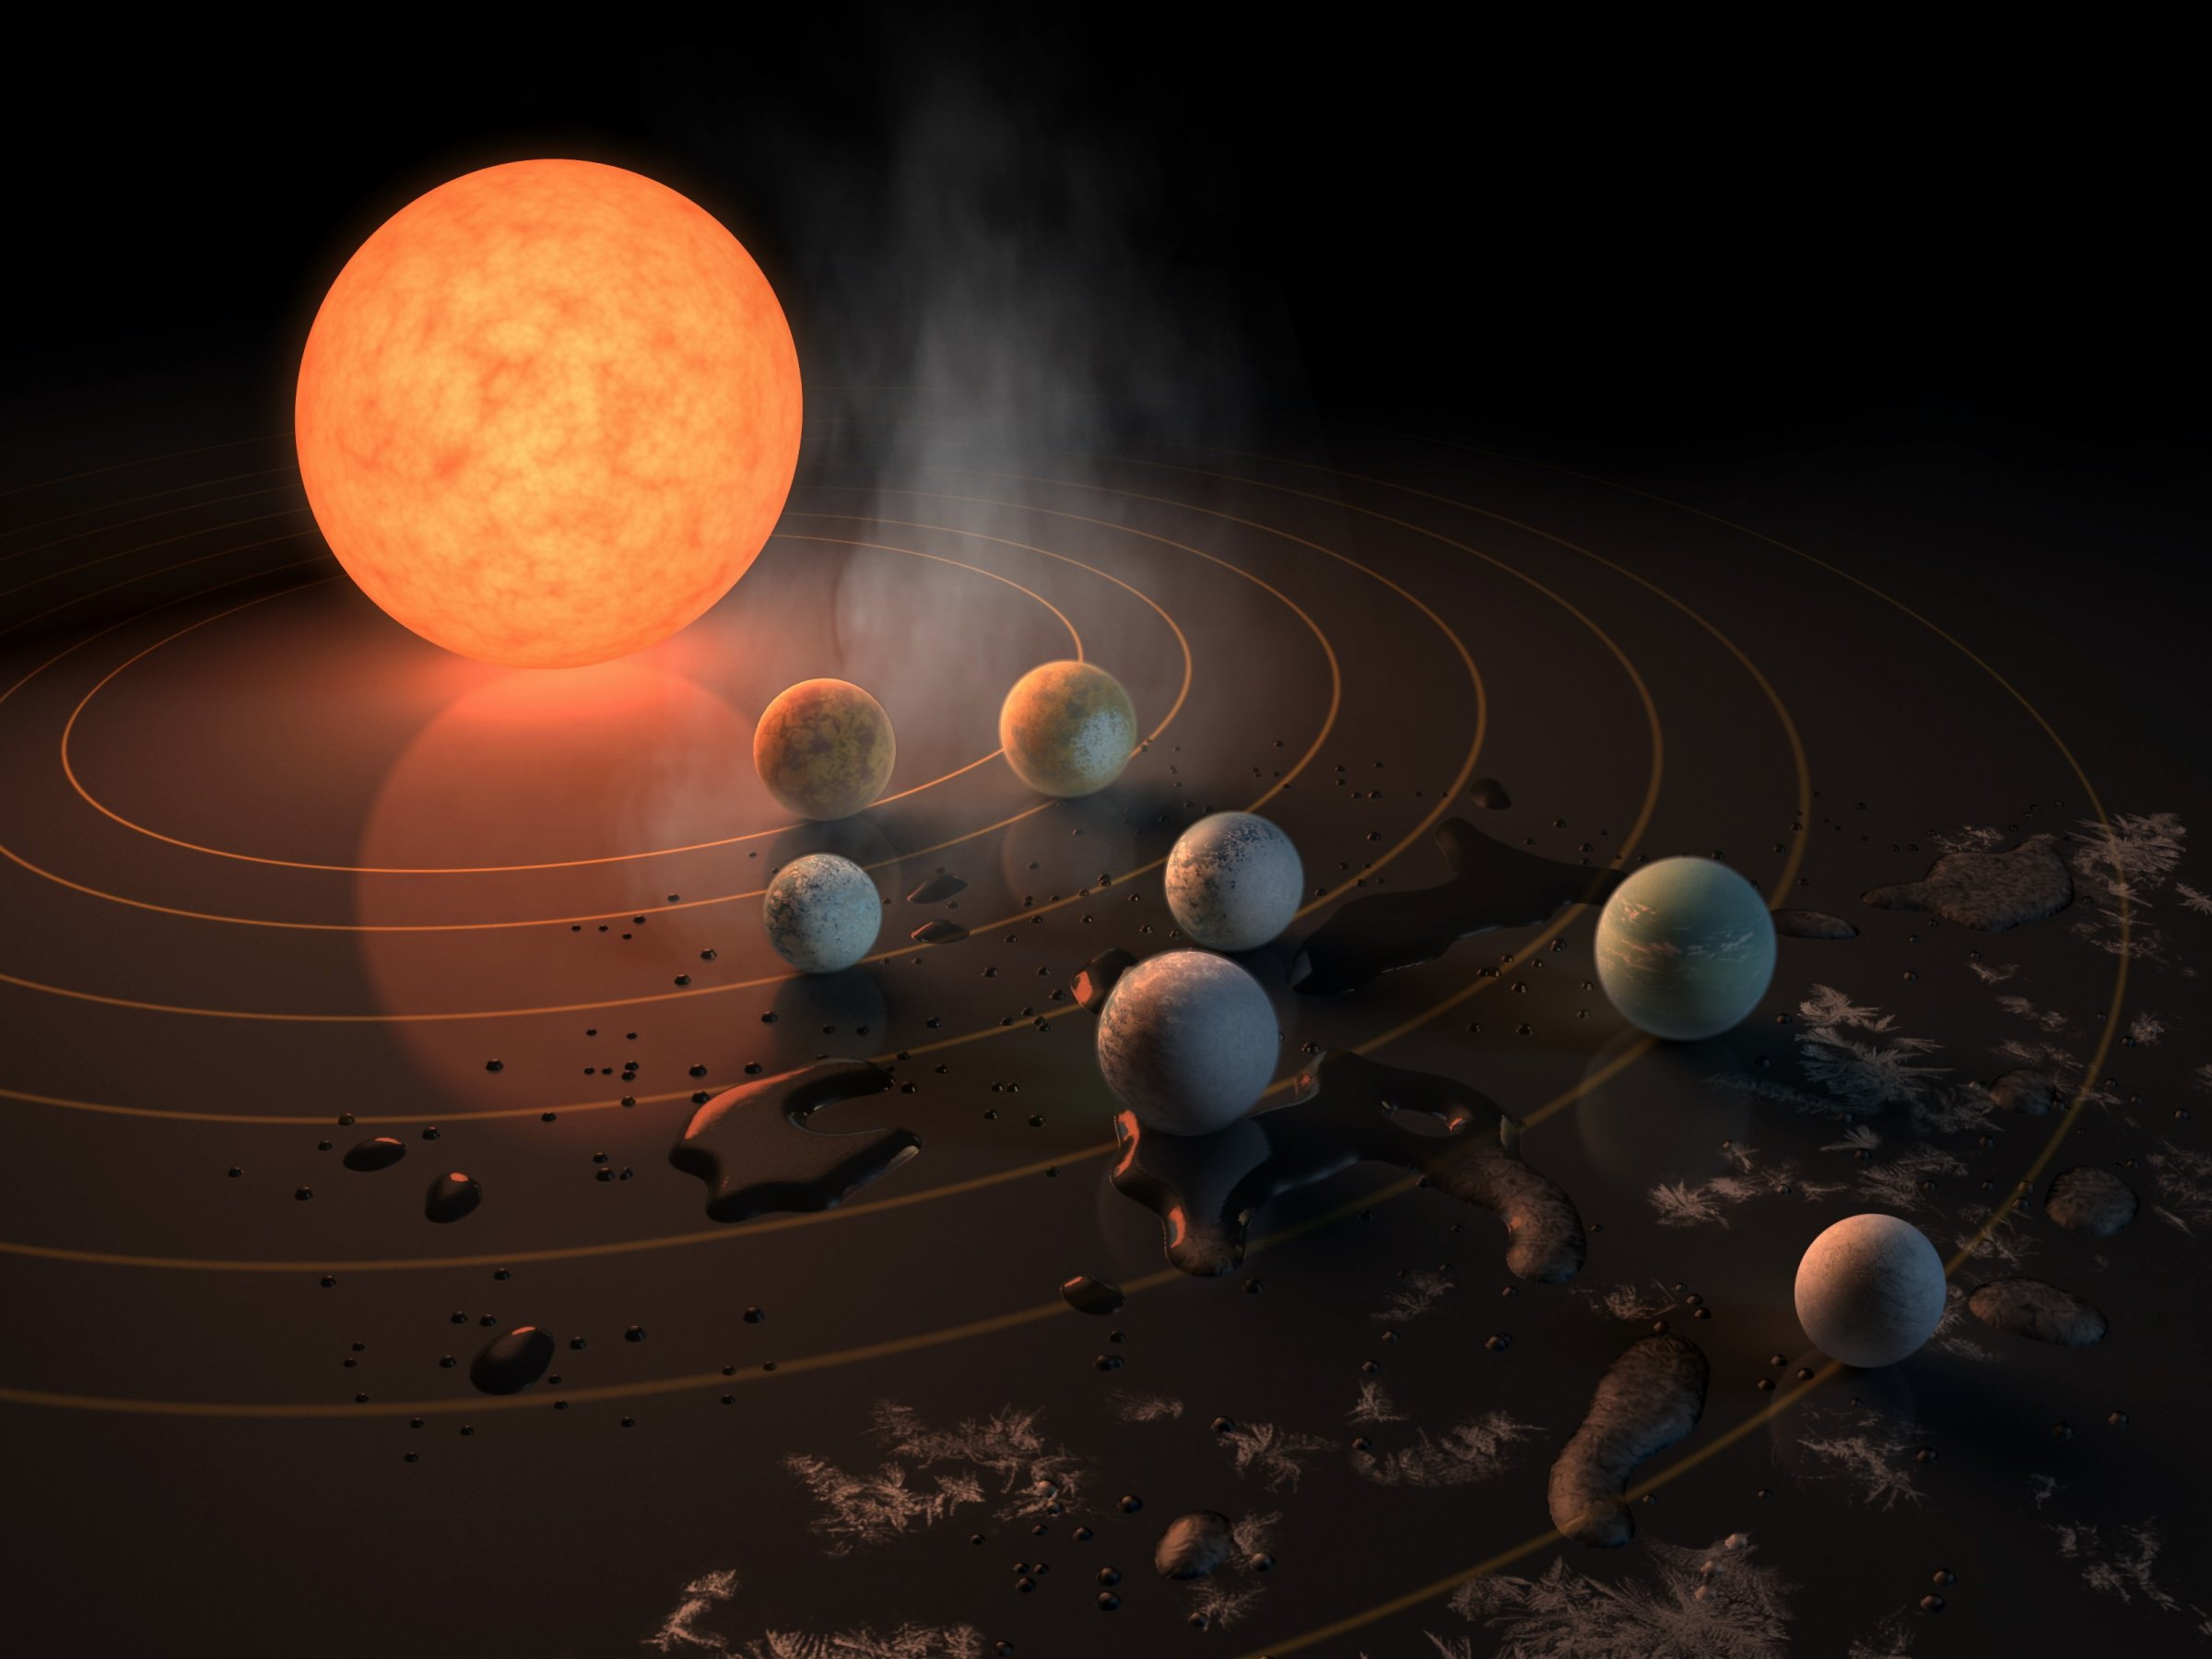 Discovered just 7 potentially habitable earth-like planets within a single system